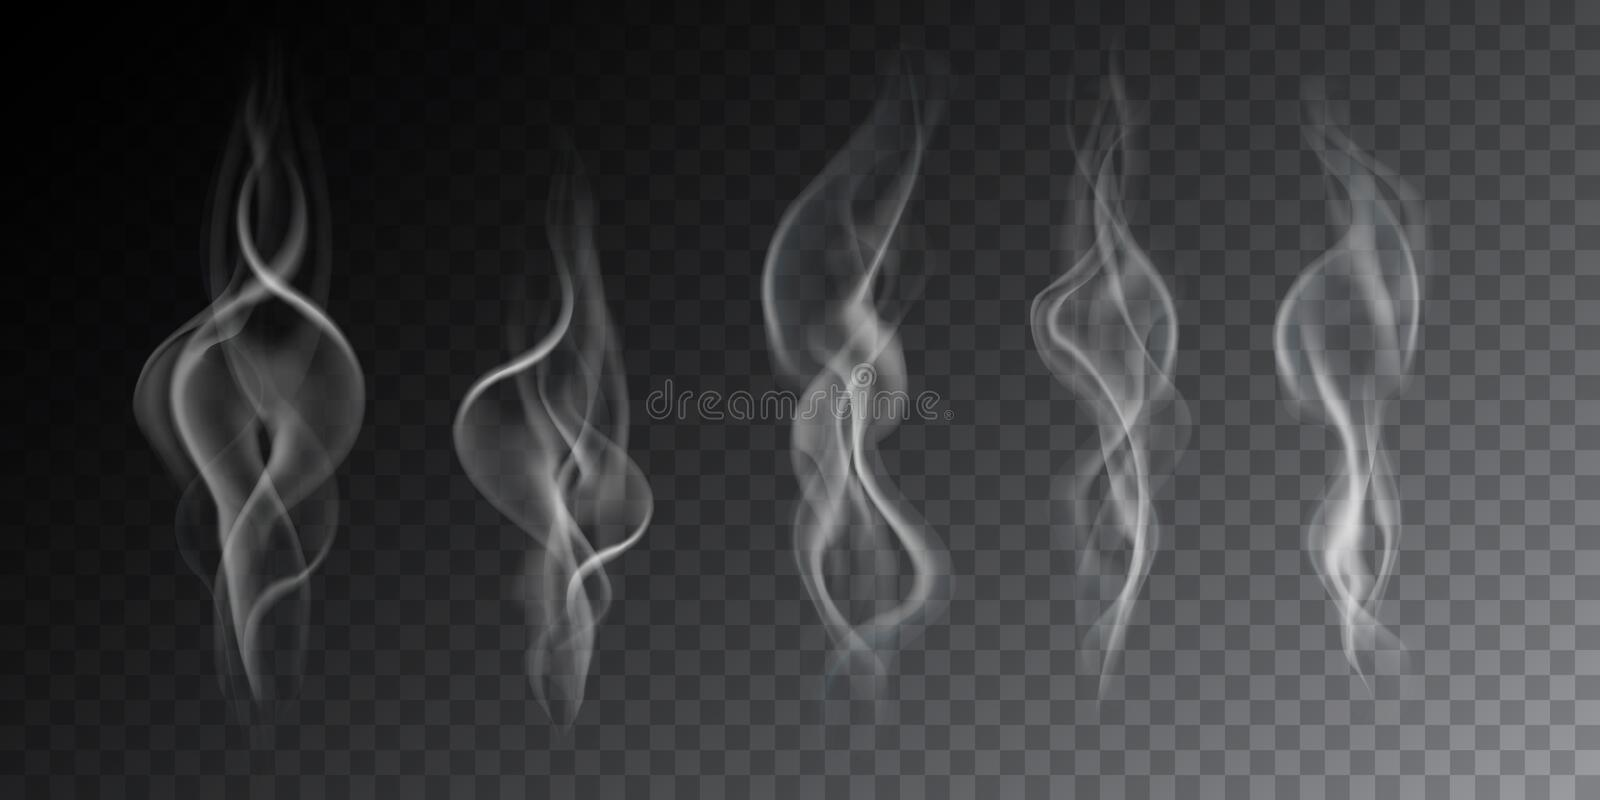 Realistic illustration of haze, cigarette smoke or steam over a hot drink, isolated on a transparent background, vector vector illustration